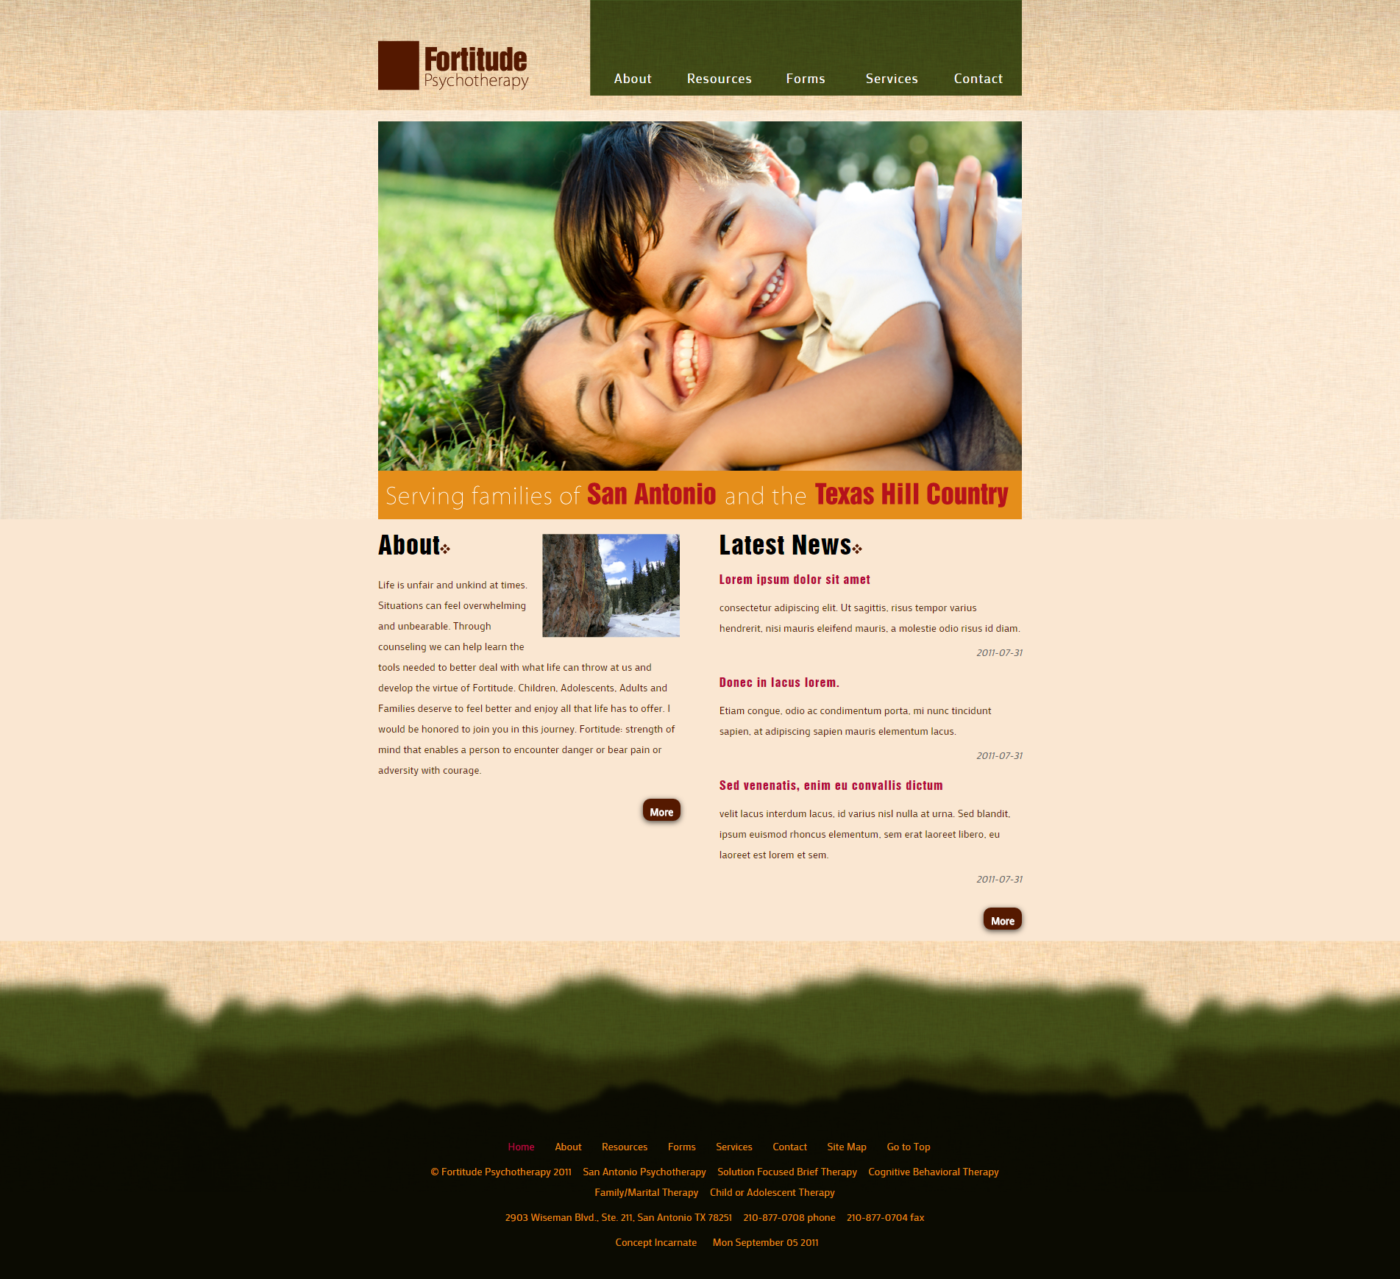 Fortitude Psychotherapy Website Design